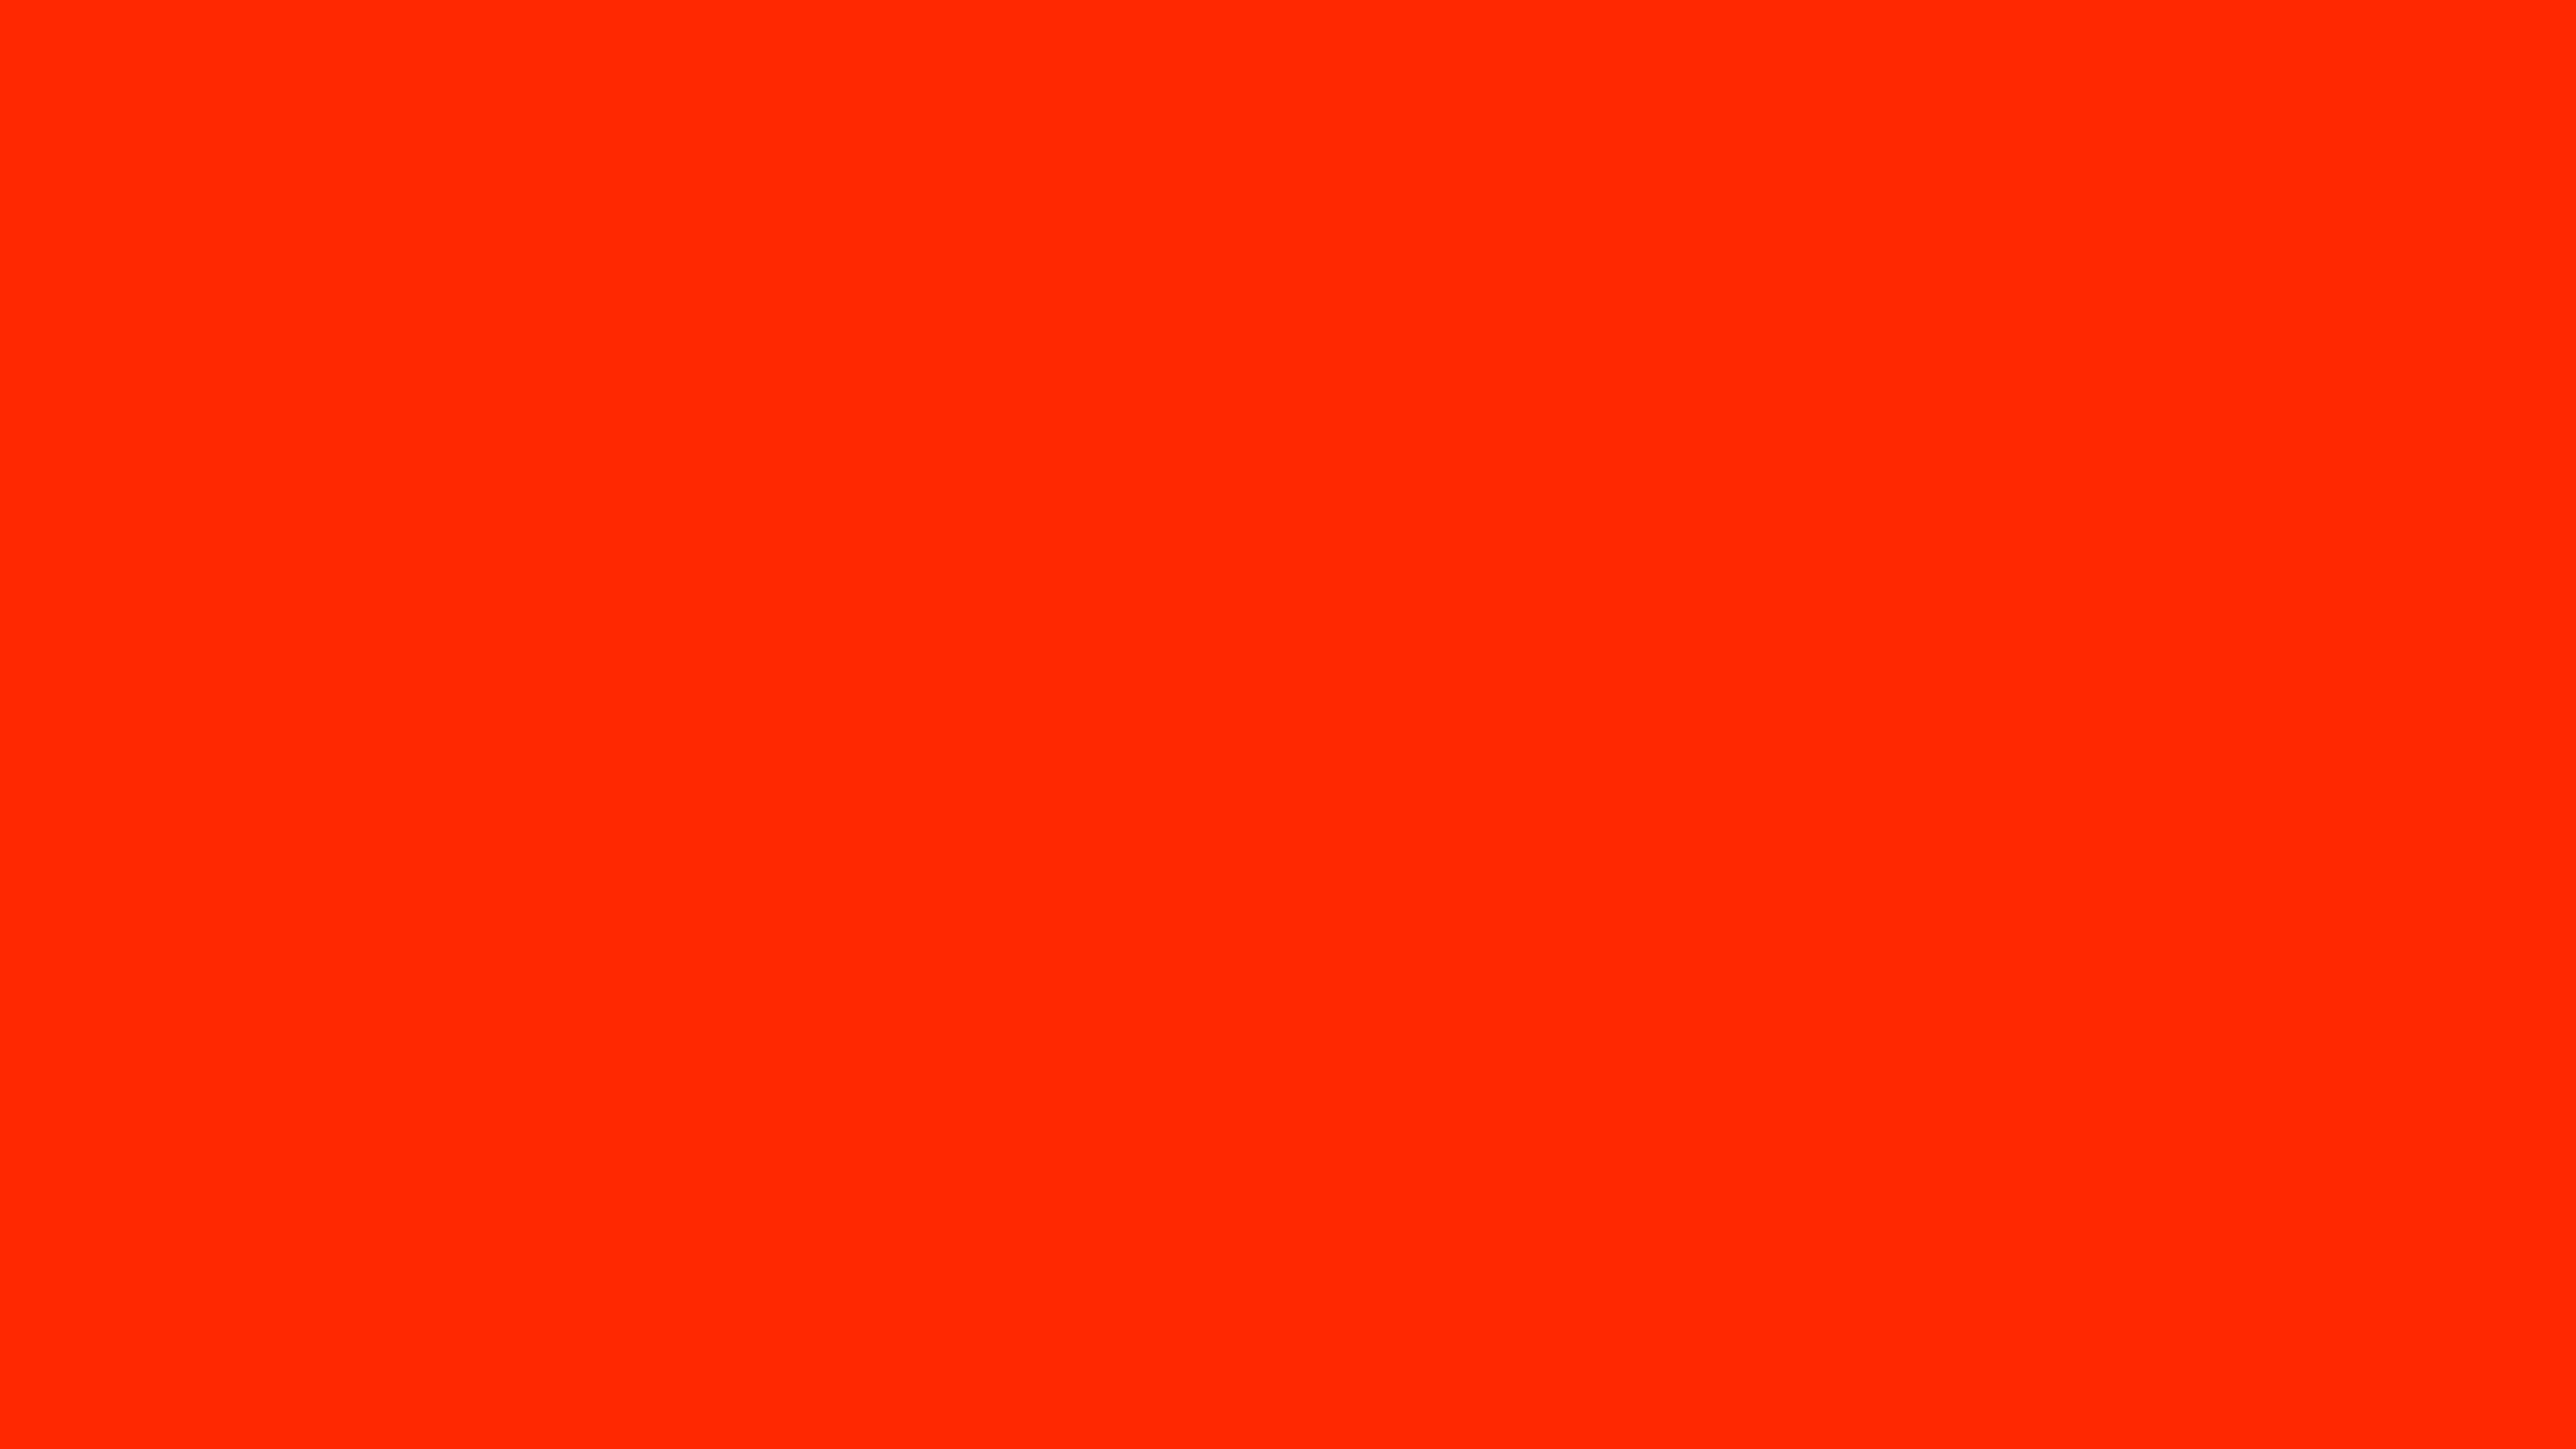 4096x2304 Ferrari Red Solid Color Background